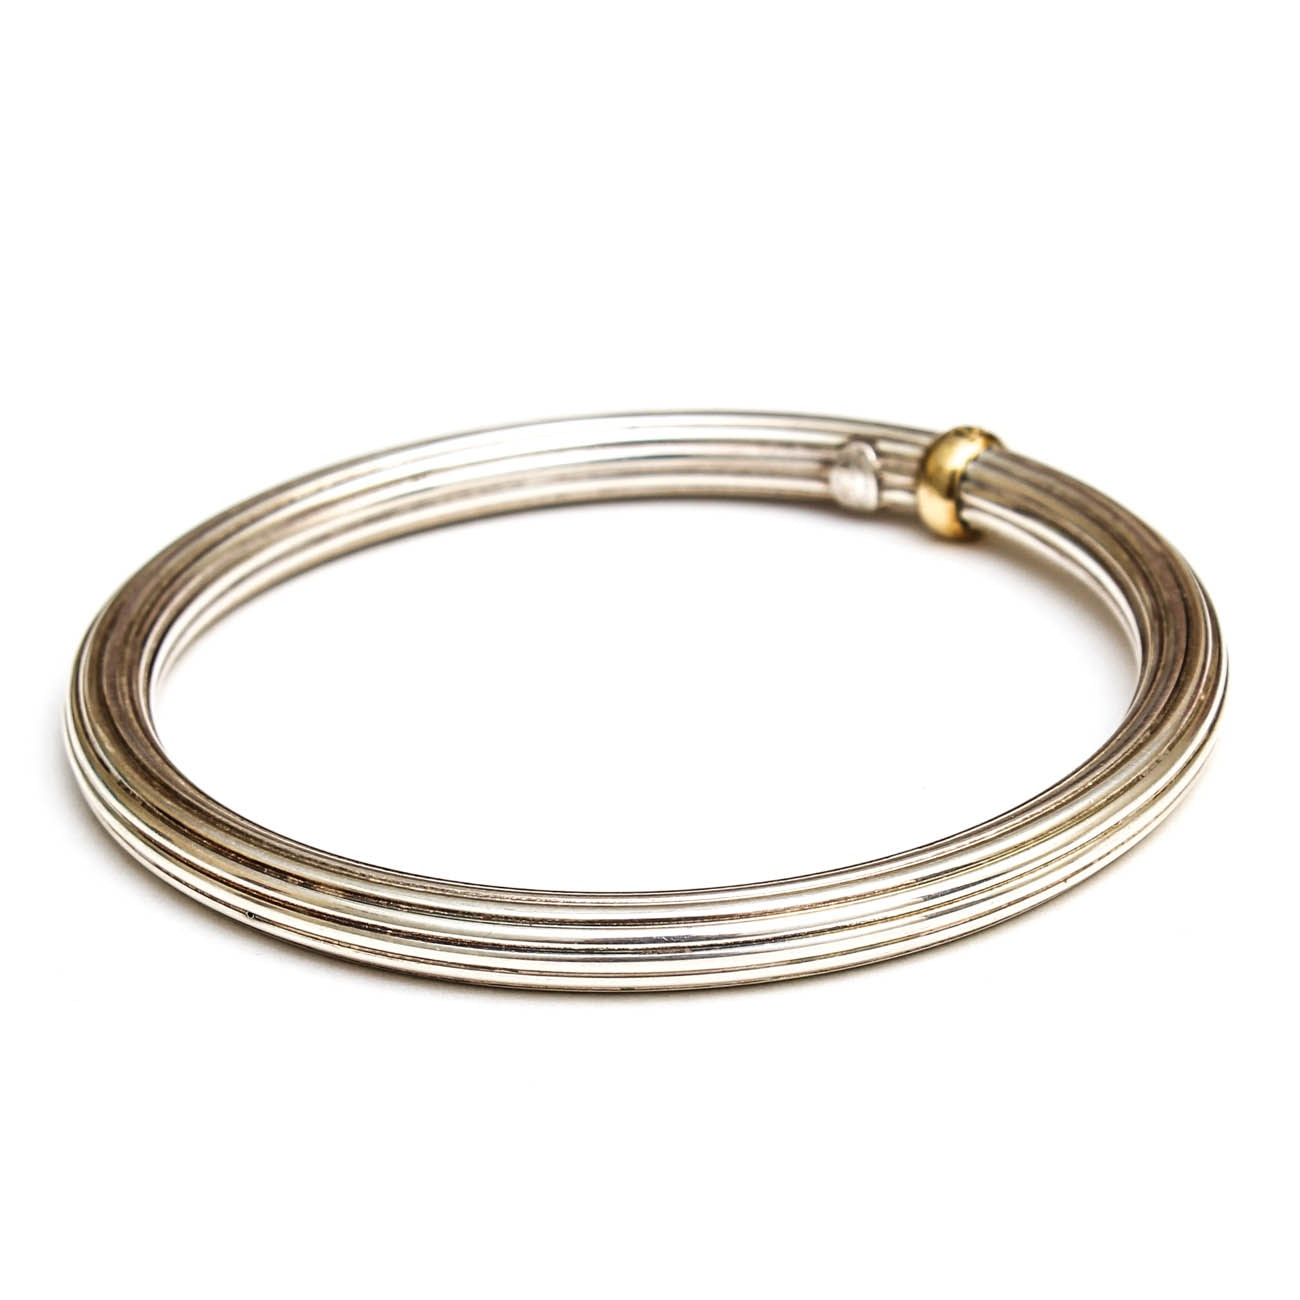 Phillip Gabriel Sterling Silver and 18K Yellow Gold Bangle Bracelet